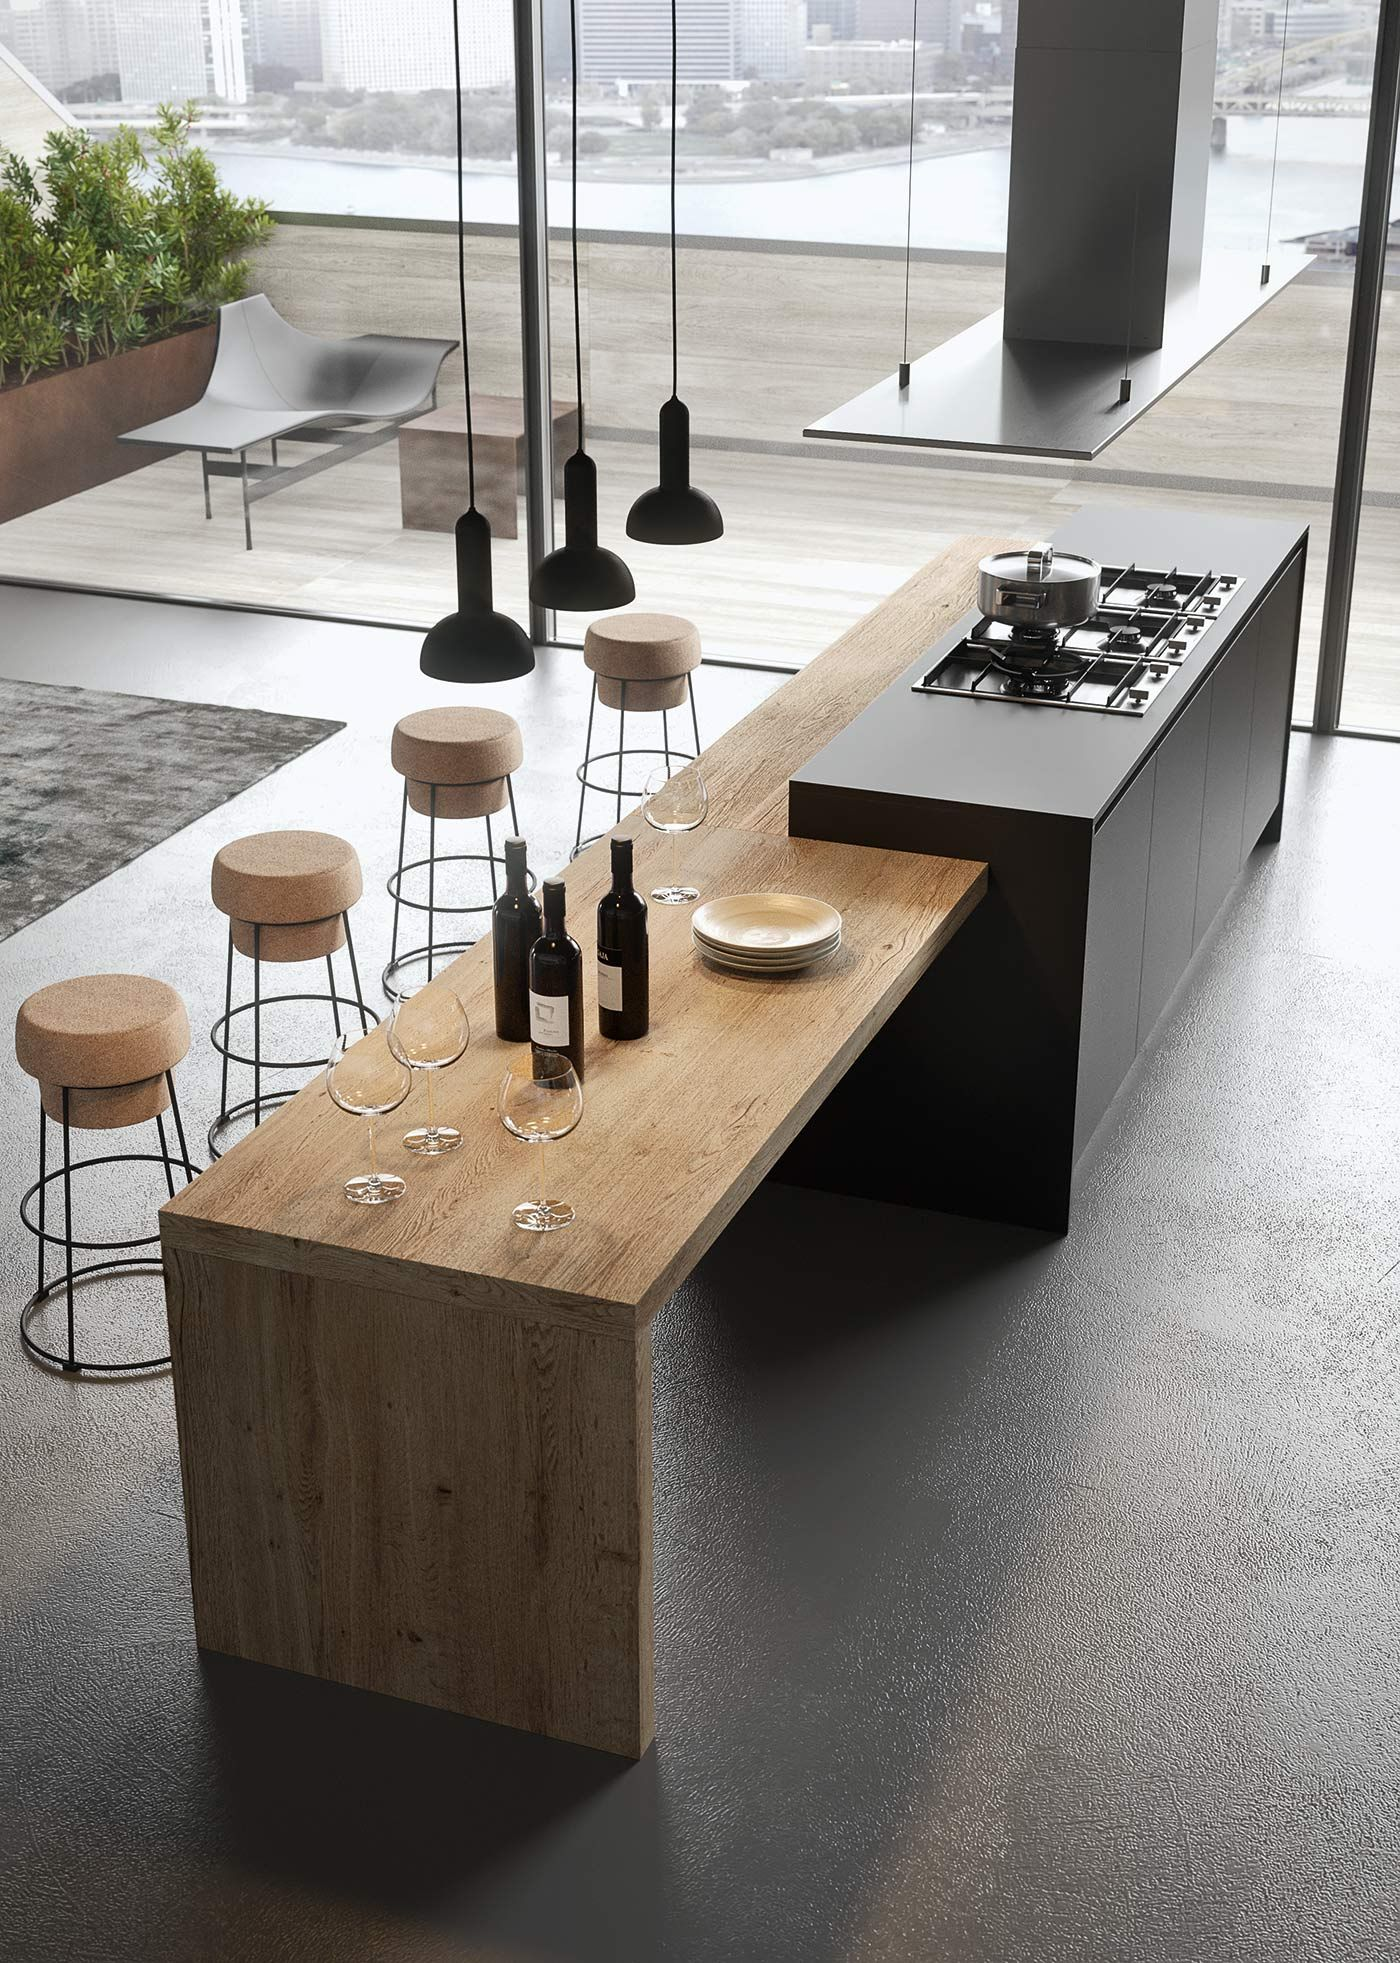 25 Absolutely Charming Black Kitchen Interiorforlife pale wood